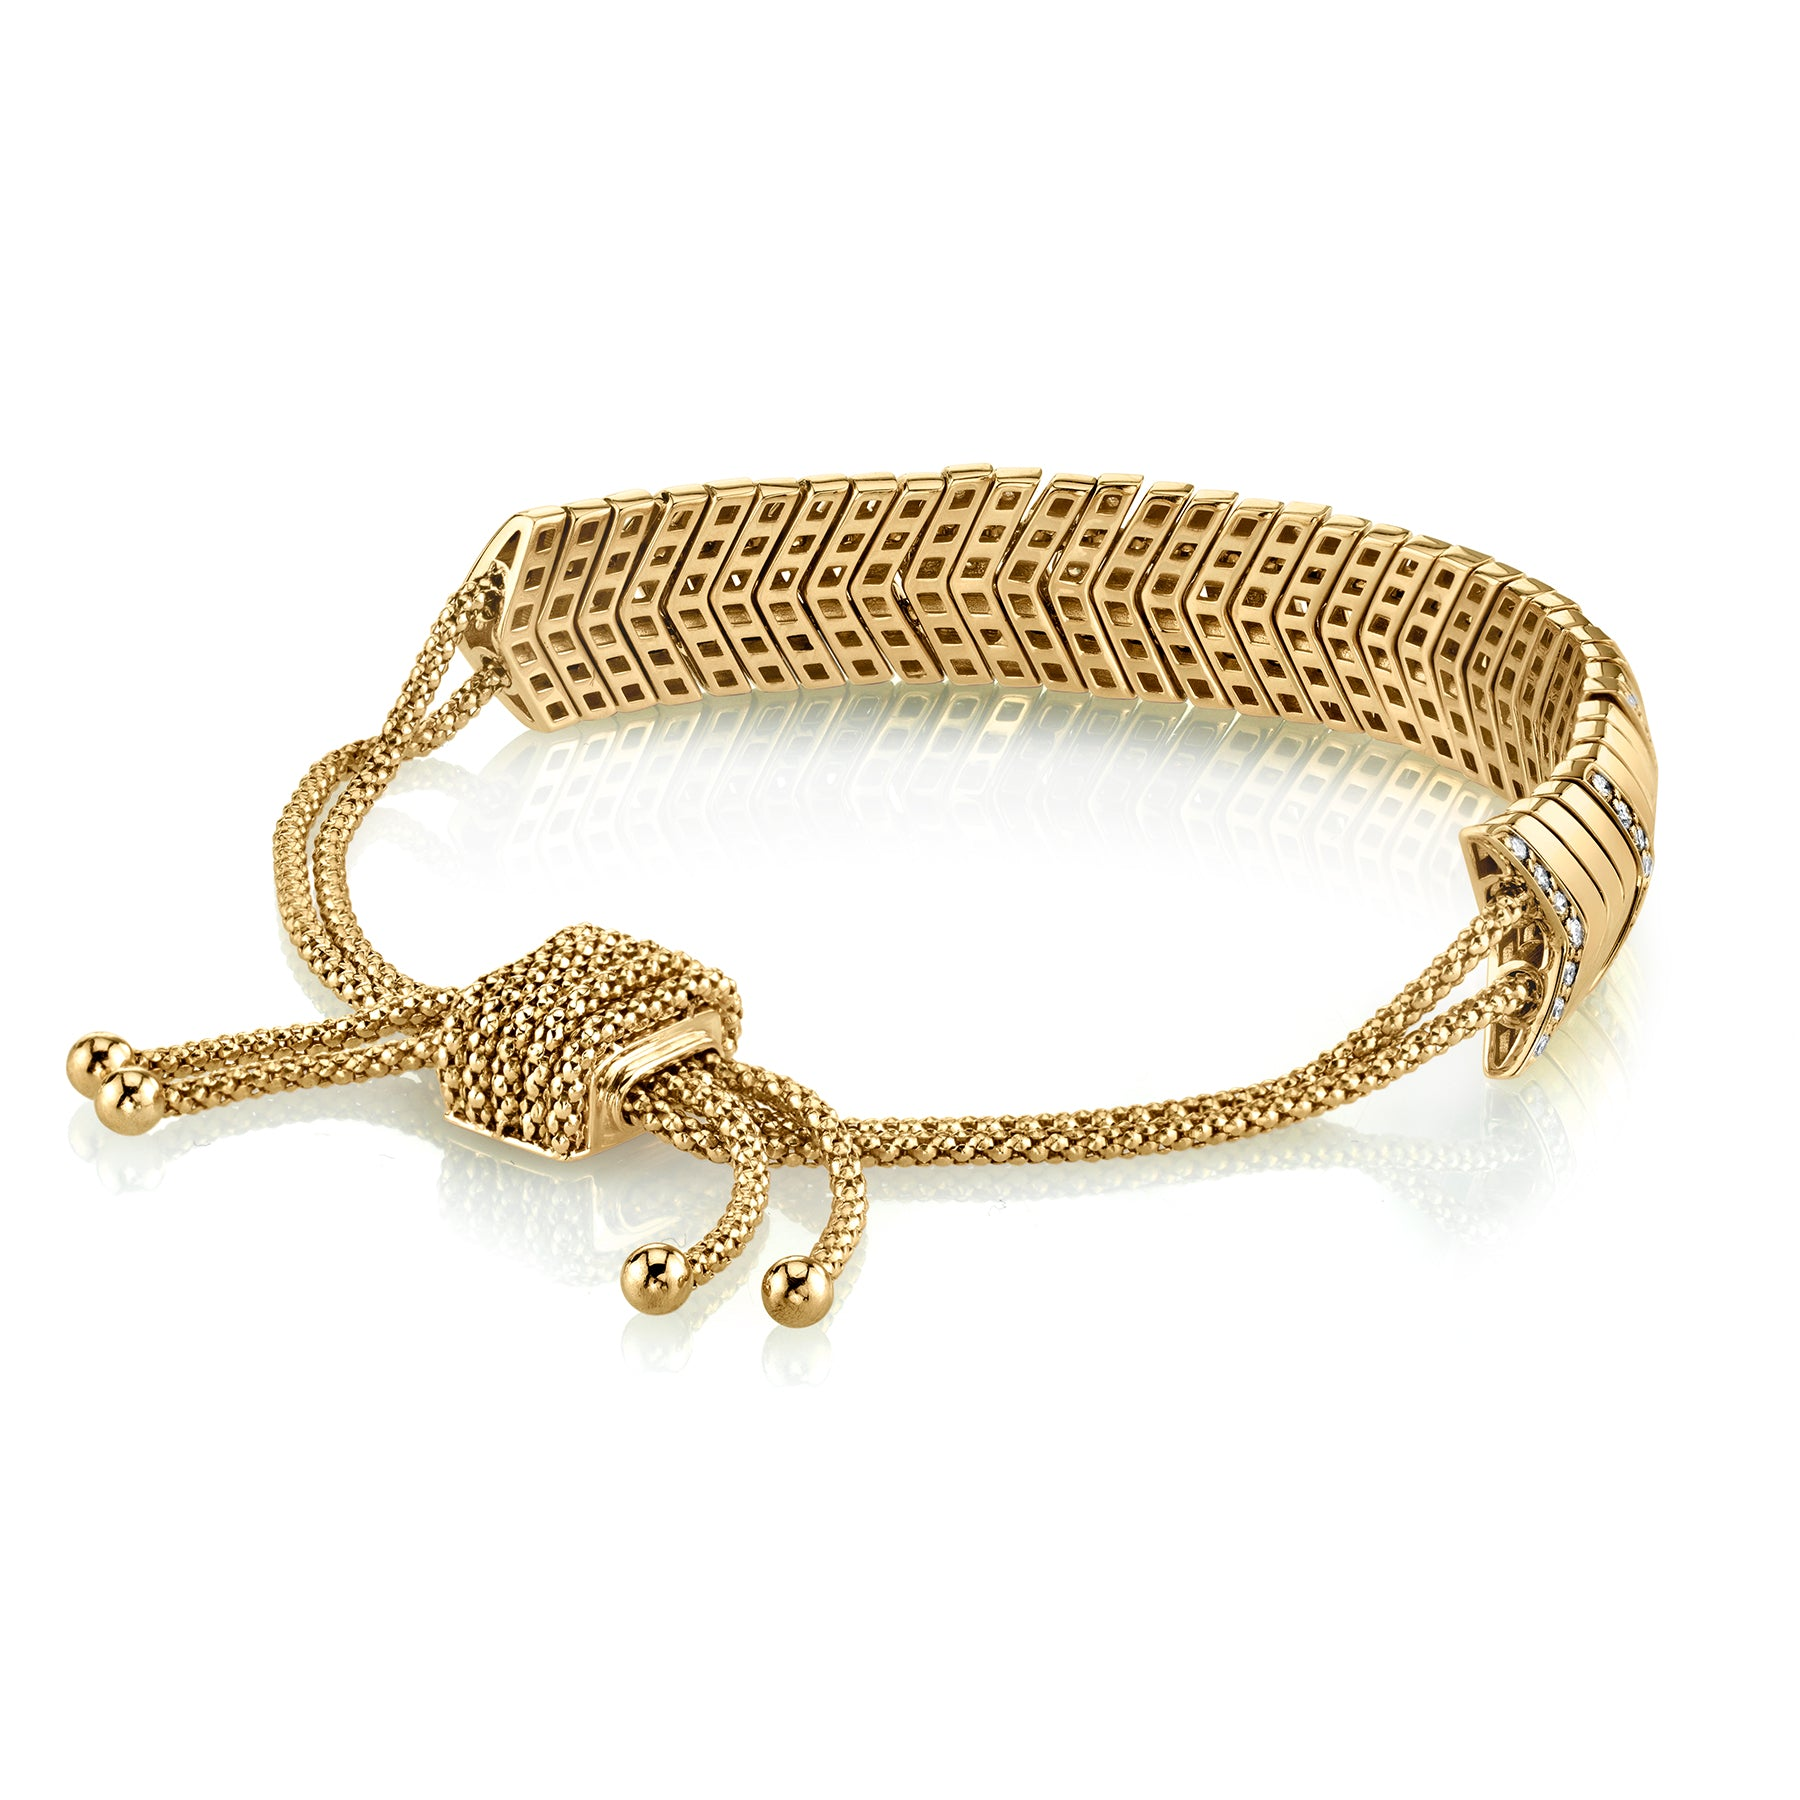 DIAMOND WIDE SNAKE LINK BRACELET